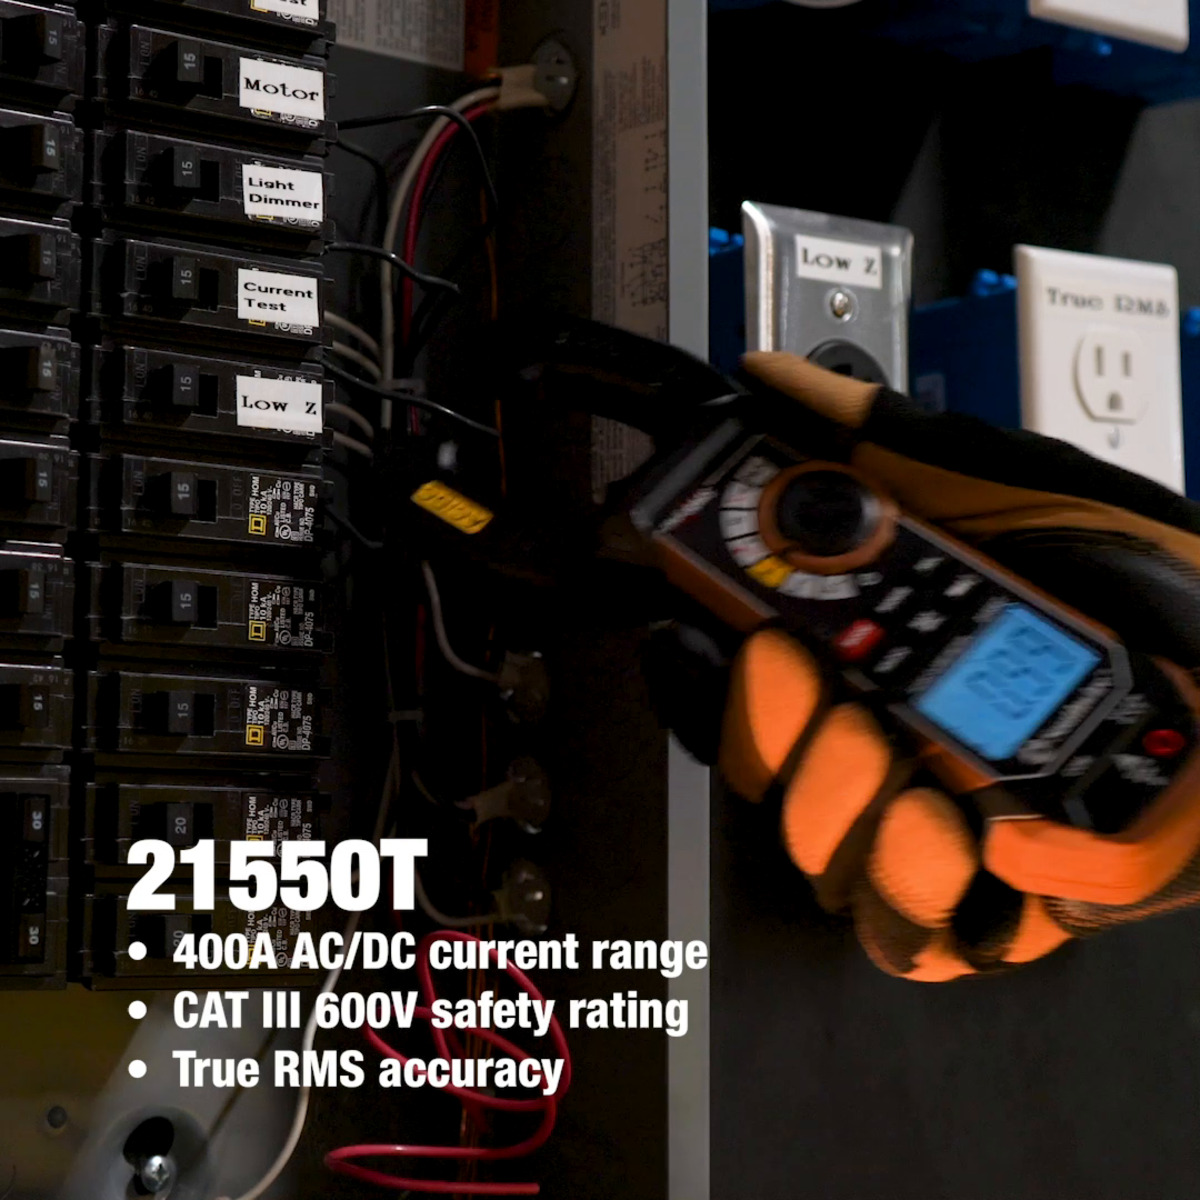 400A AC/DC Clamp Meter with True RMS, Built-In NCV, Worklight, and Third-Hand Test Probe Holder